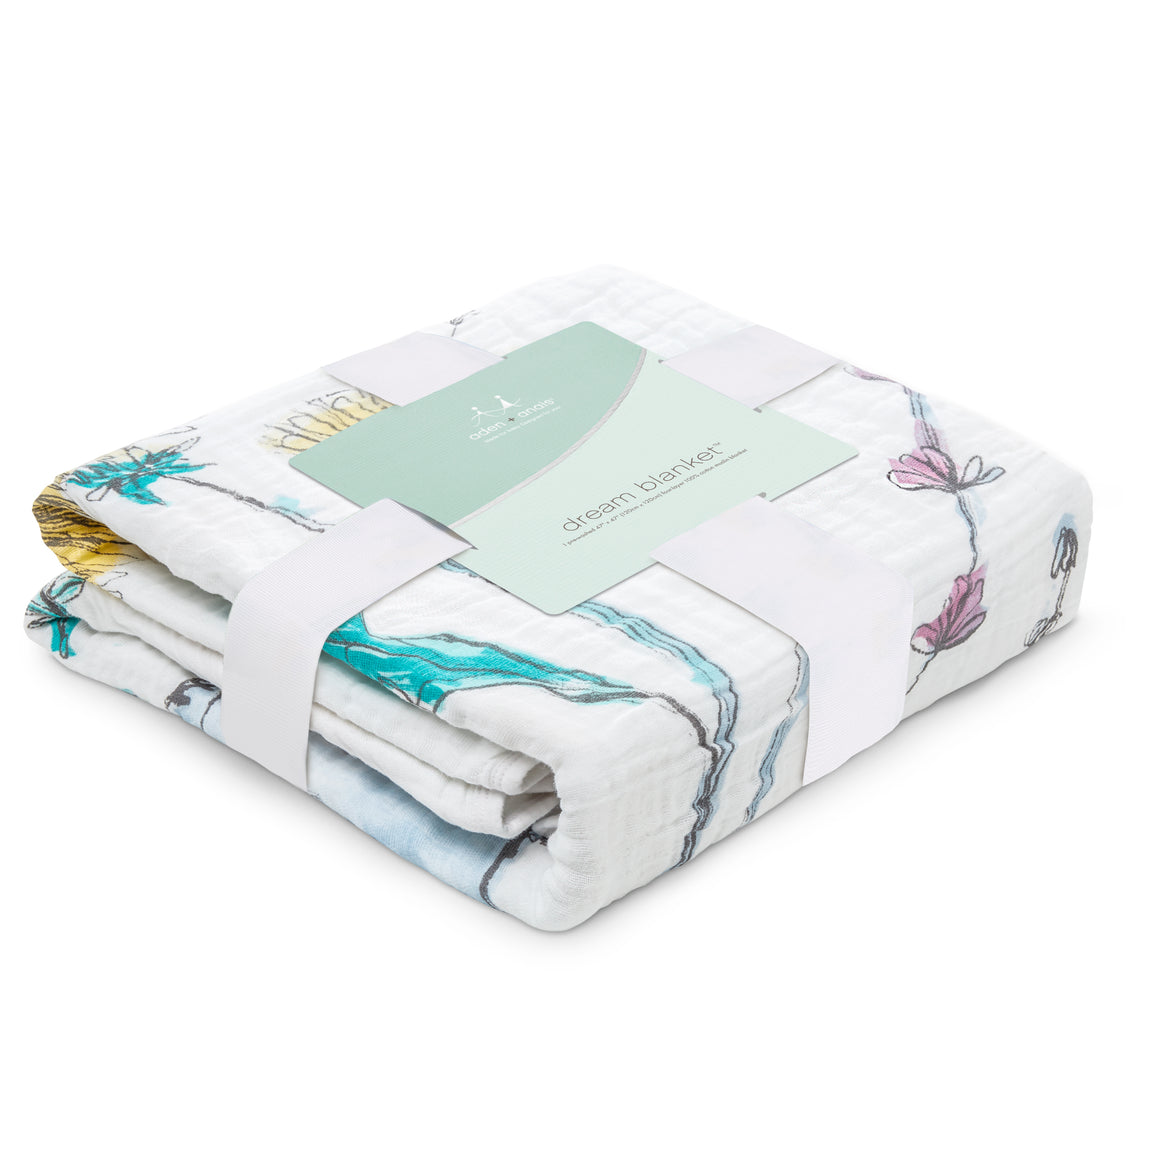 aden + anais forest fantasy rabbits classic muslin dream blanket